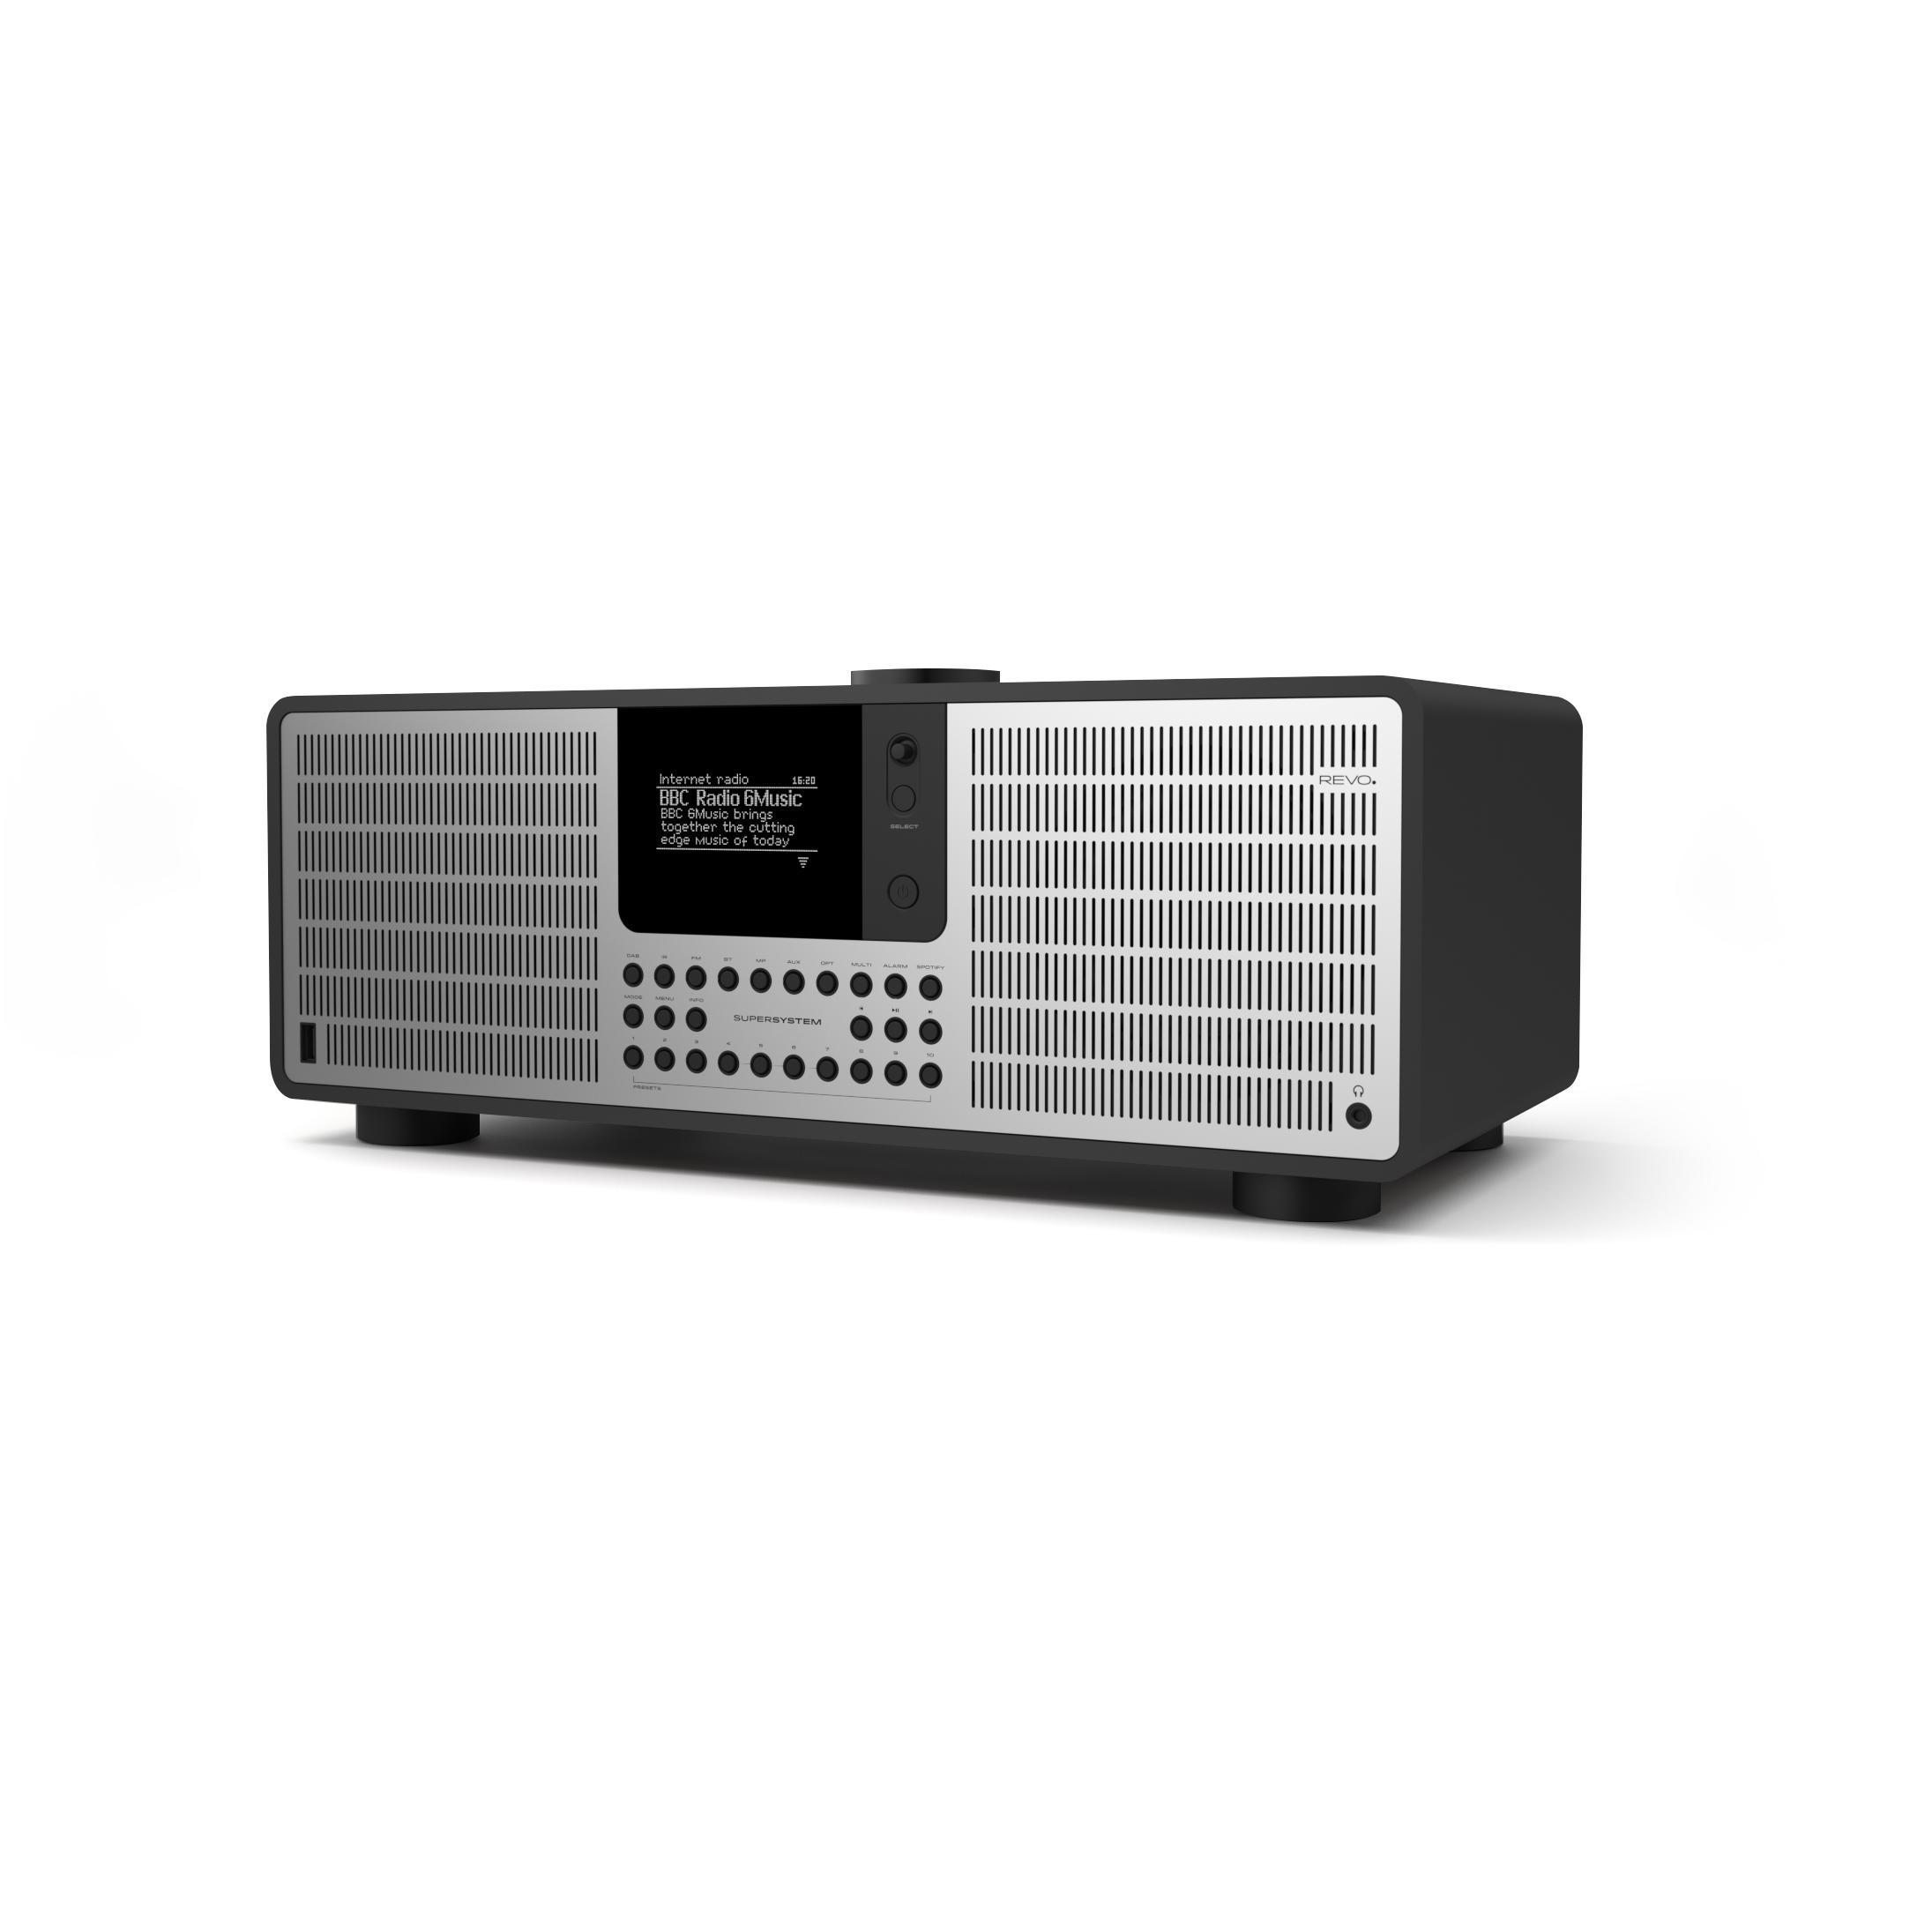 Revo SuperSystem DAB Internet Radio With Spotify - Matt Black / Silver